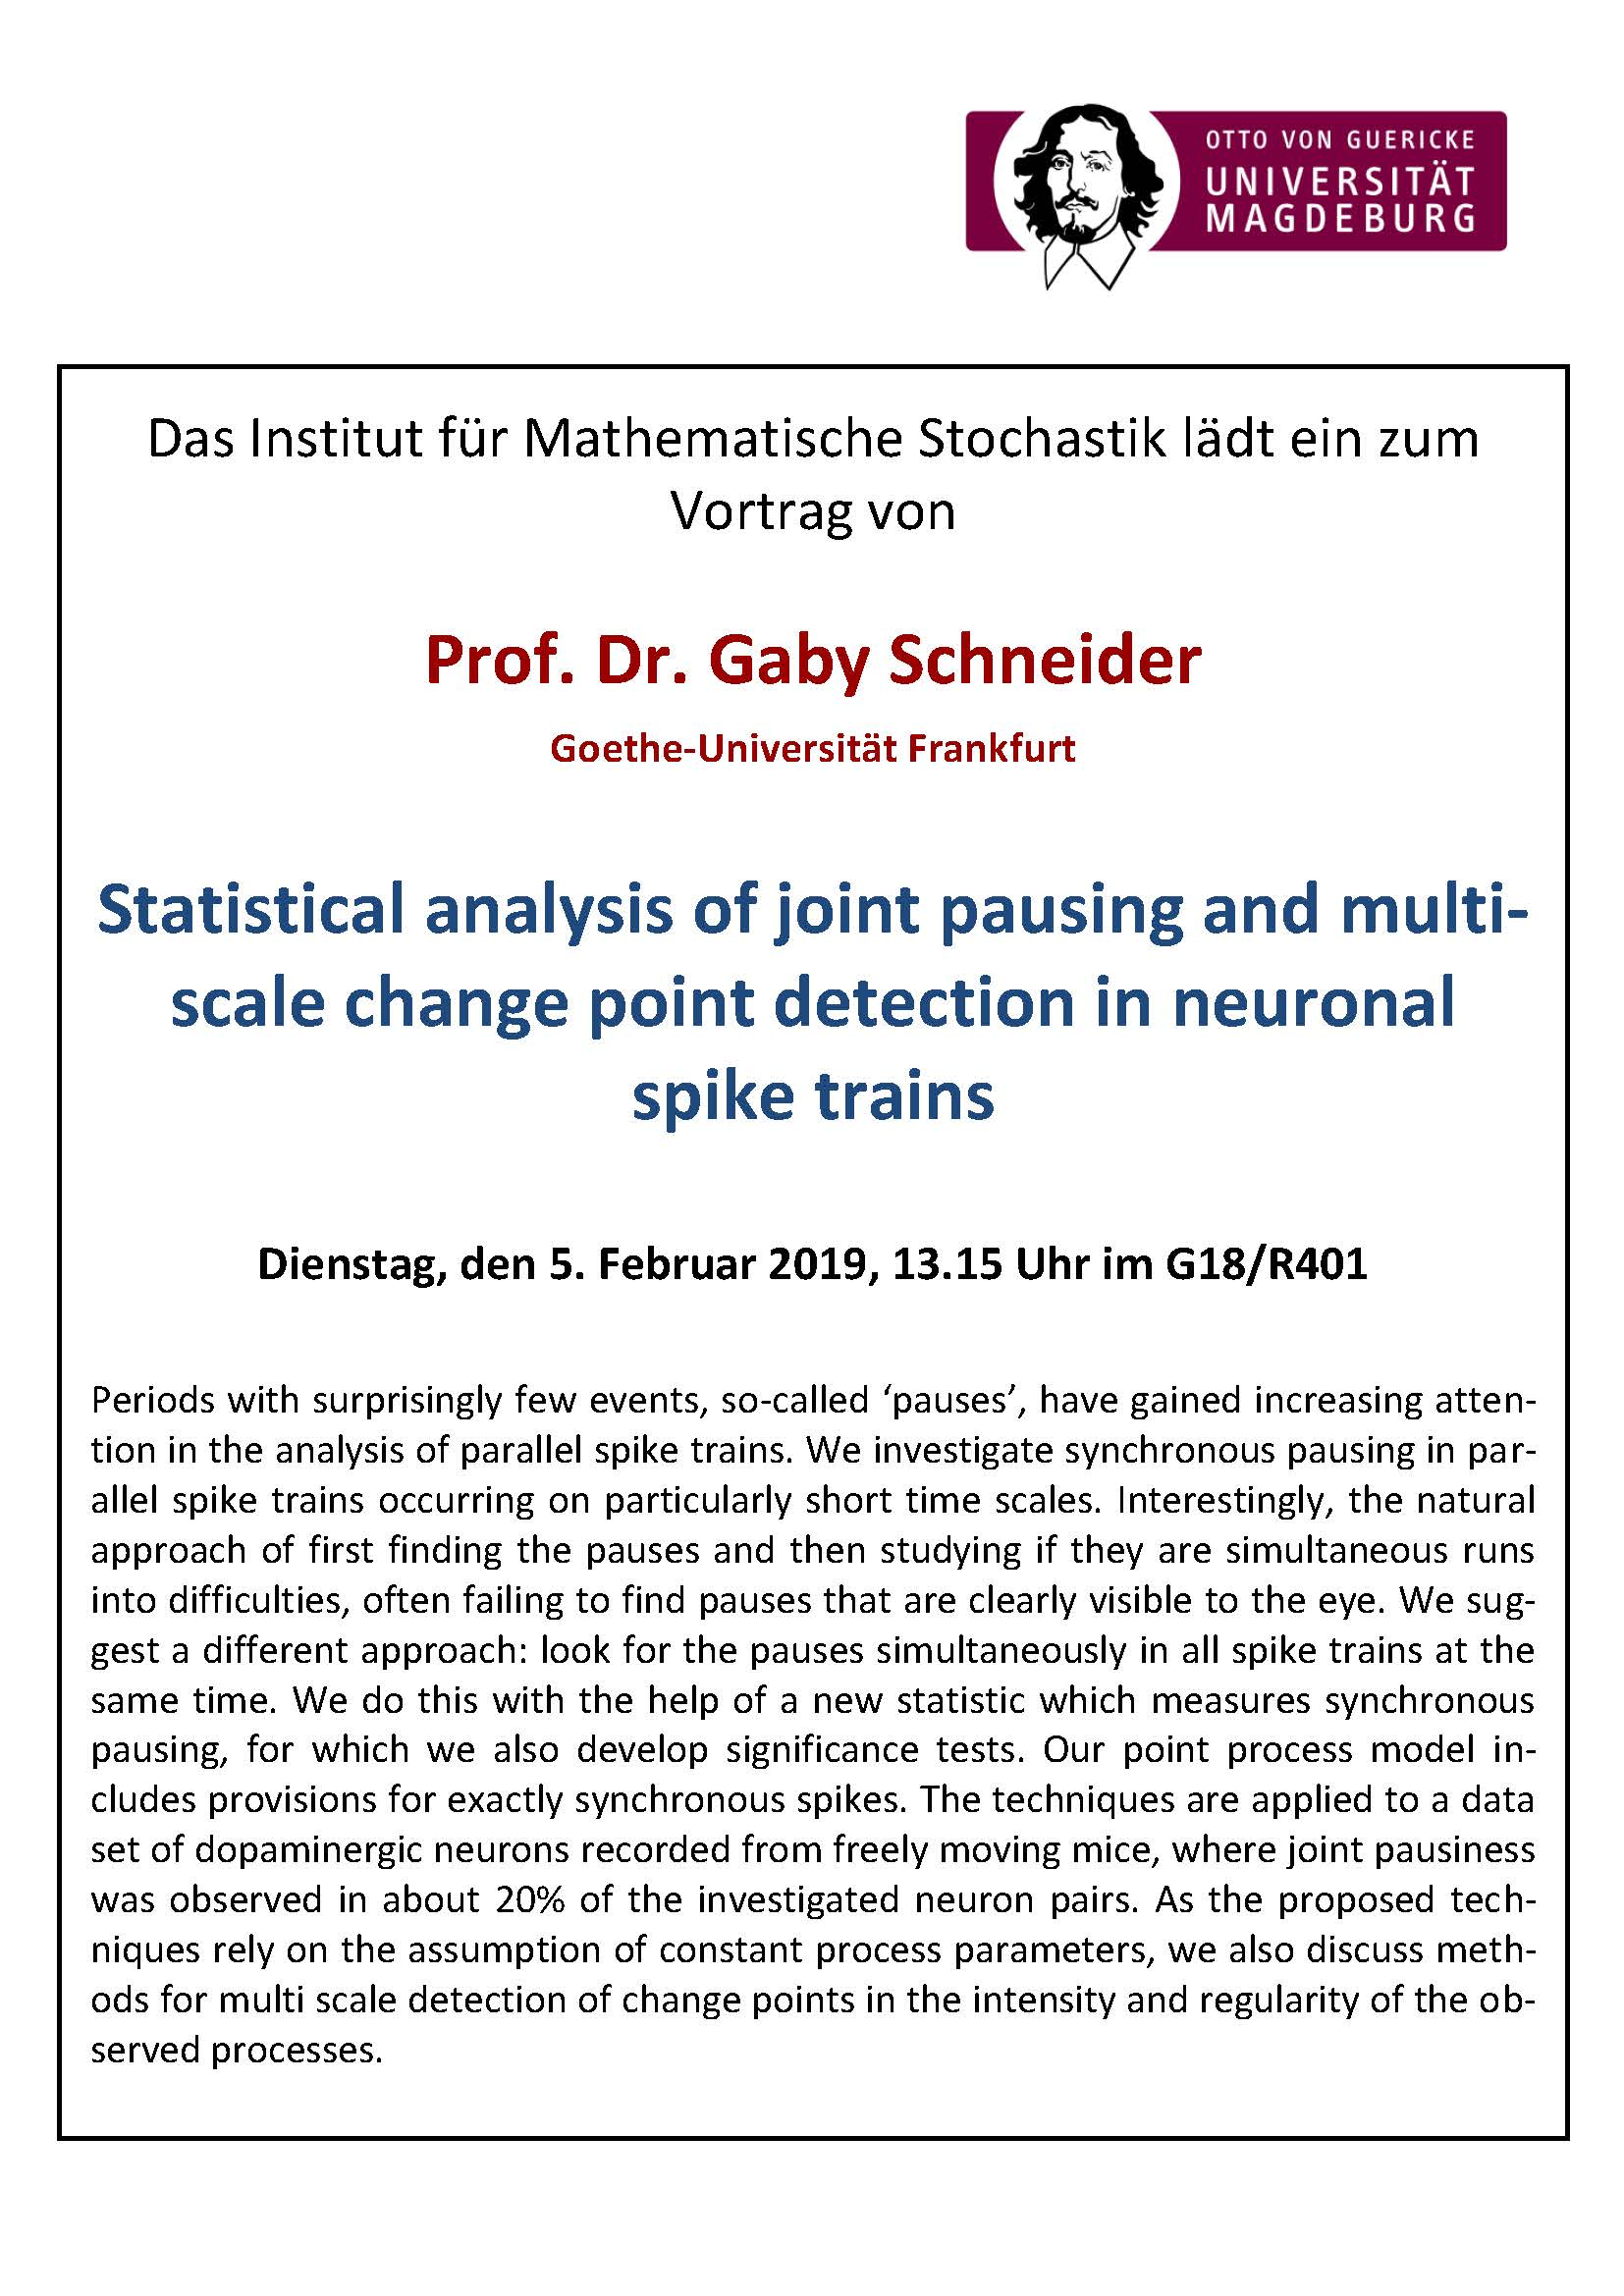 Statistic seminar: Statistical analysis of joint pausing and multi-scale change point detection in neuronal spike trains @ OVGU House 18, Room 401